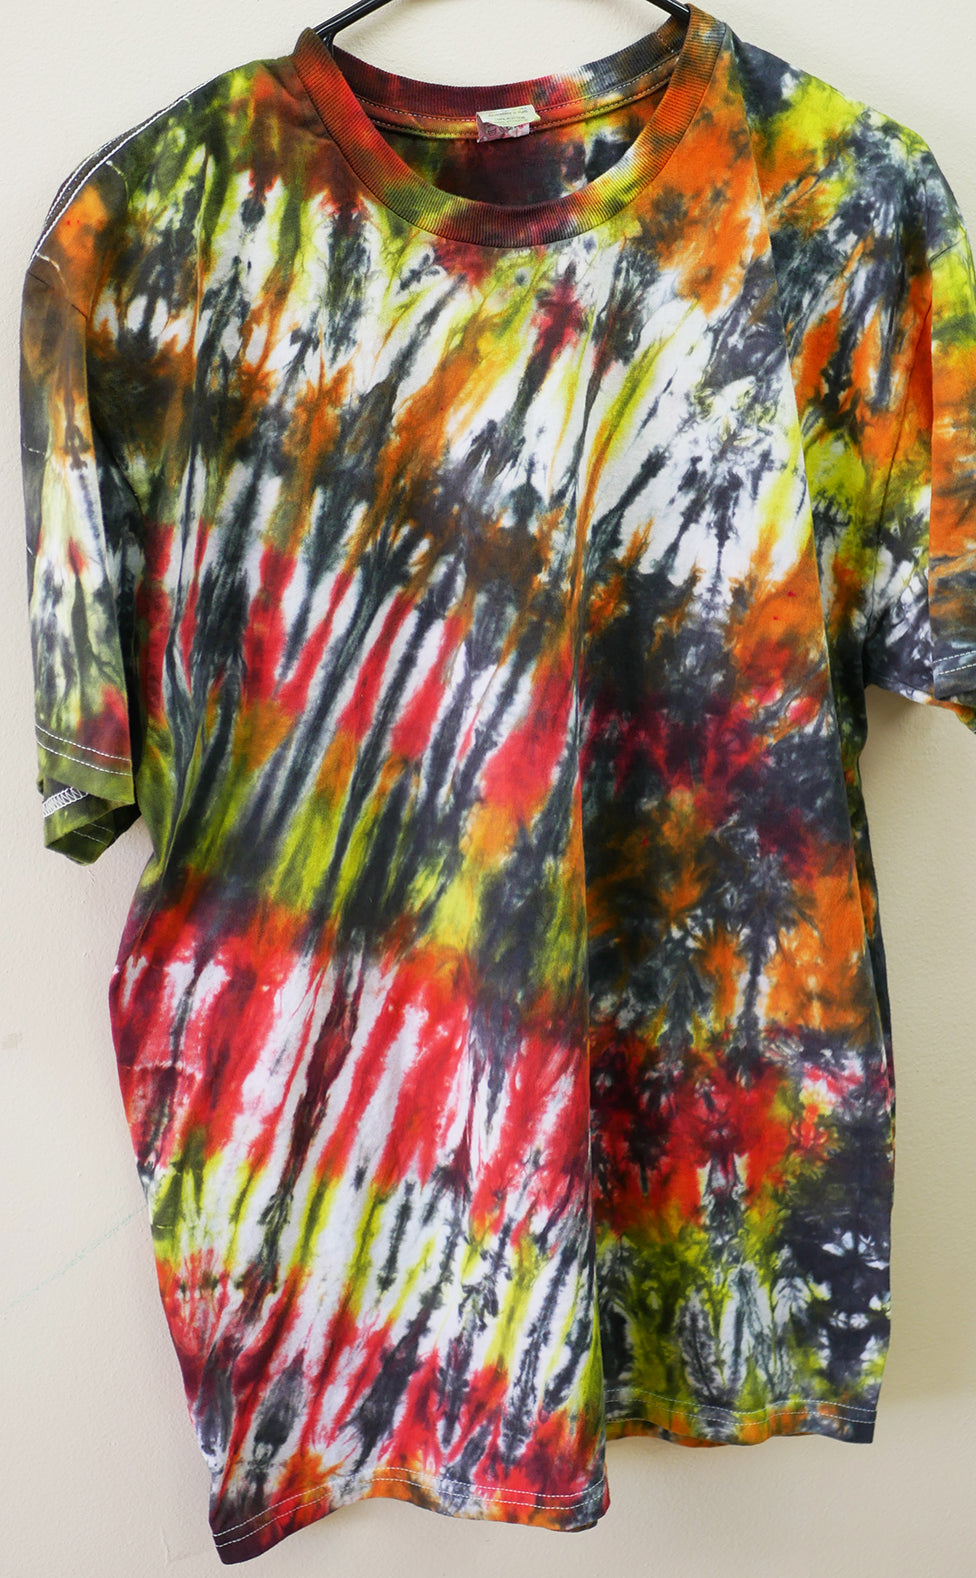 Sunset Tiger Tie-Dyed T